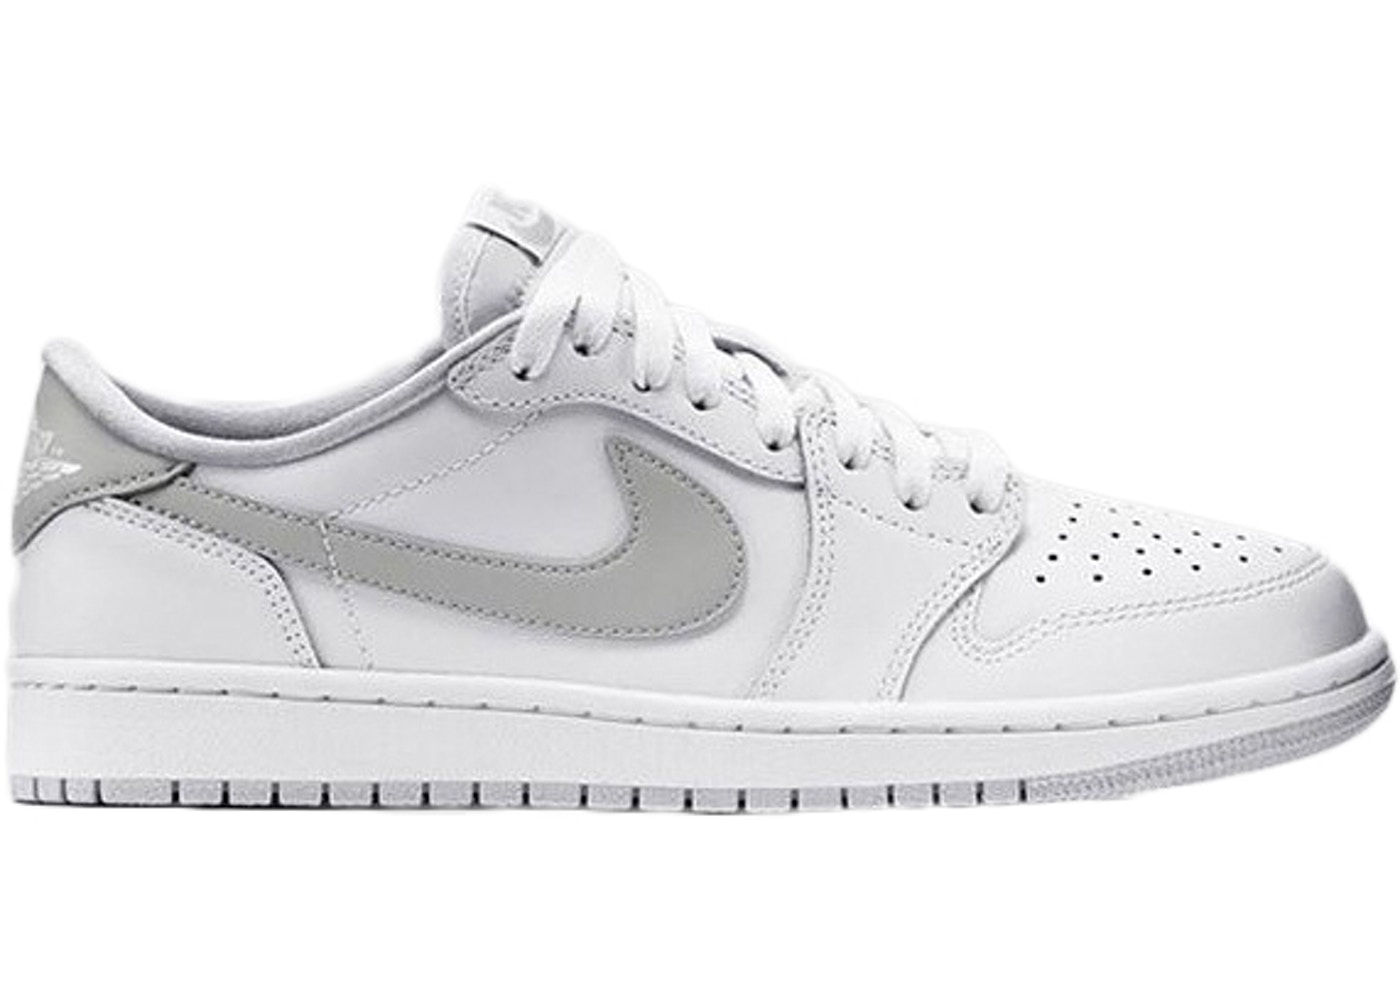 big sale 530d8 bc8eb Jordan 1 Retro Low White Neutral Grey